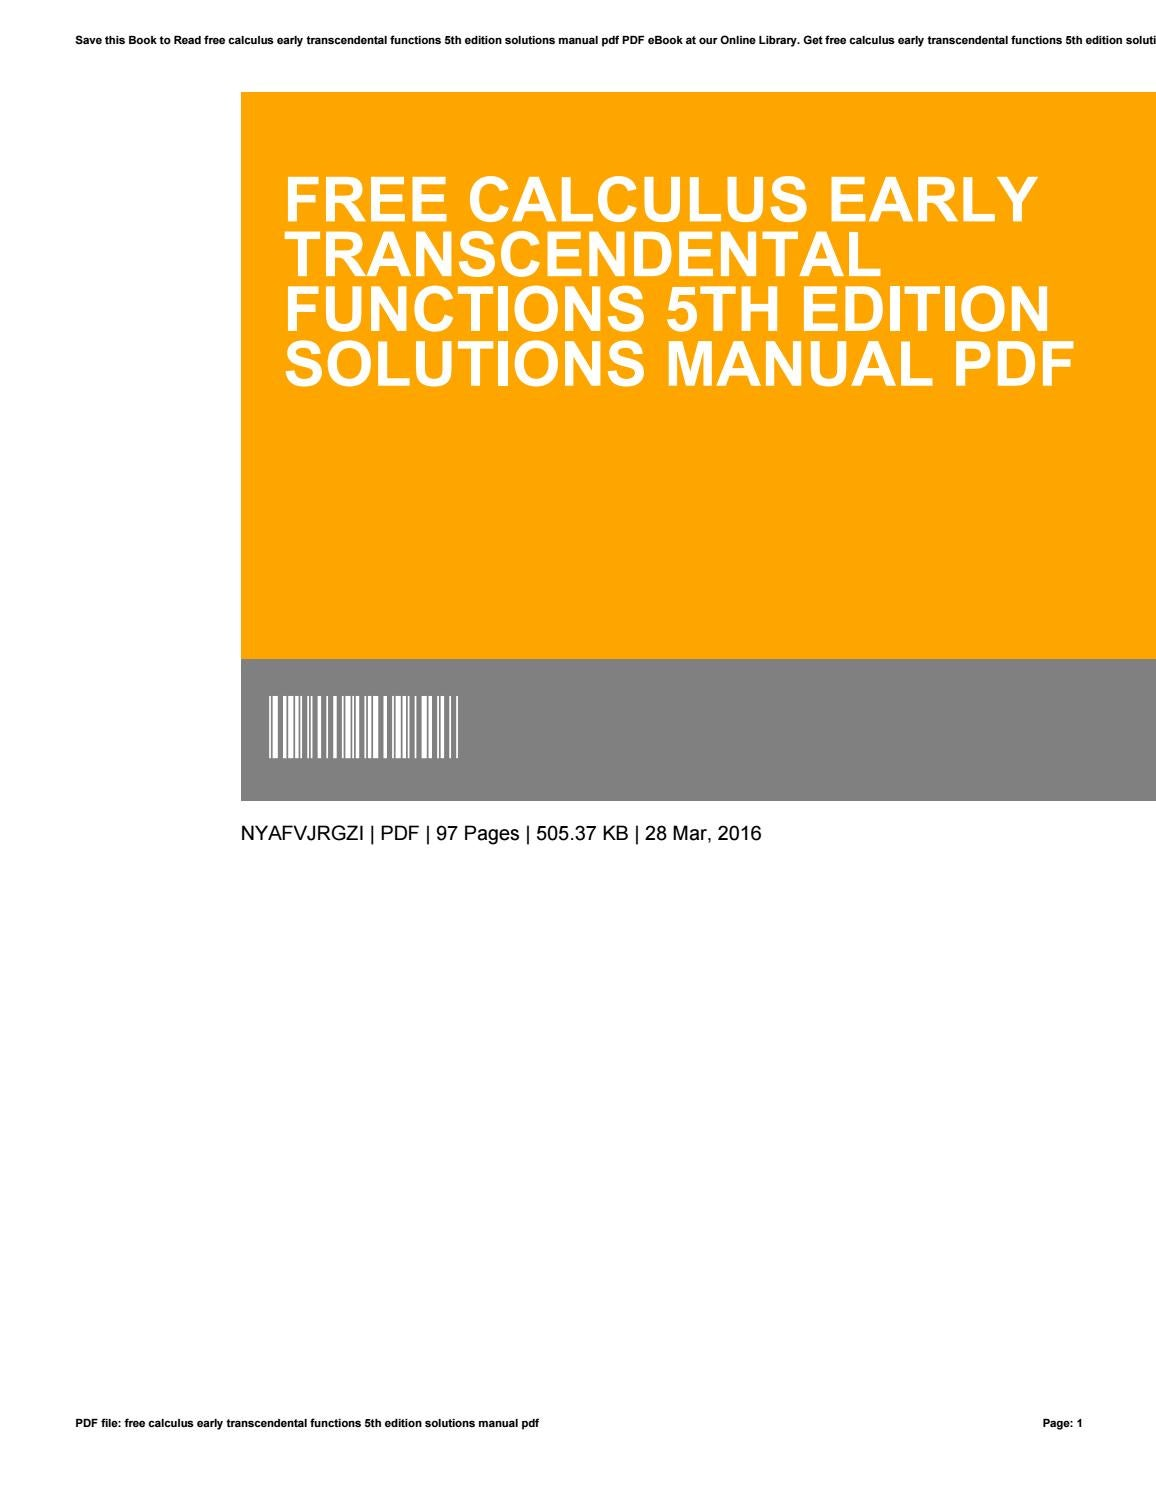 calculus early transcendental functions 5th edition solutions manual pdf